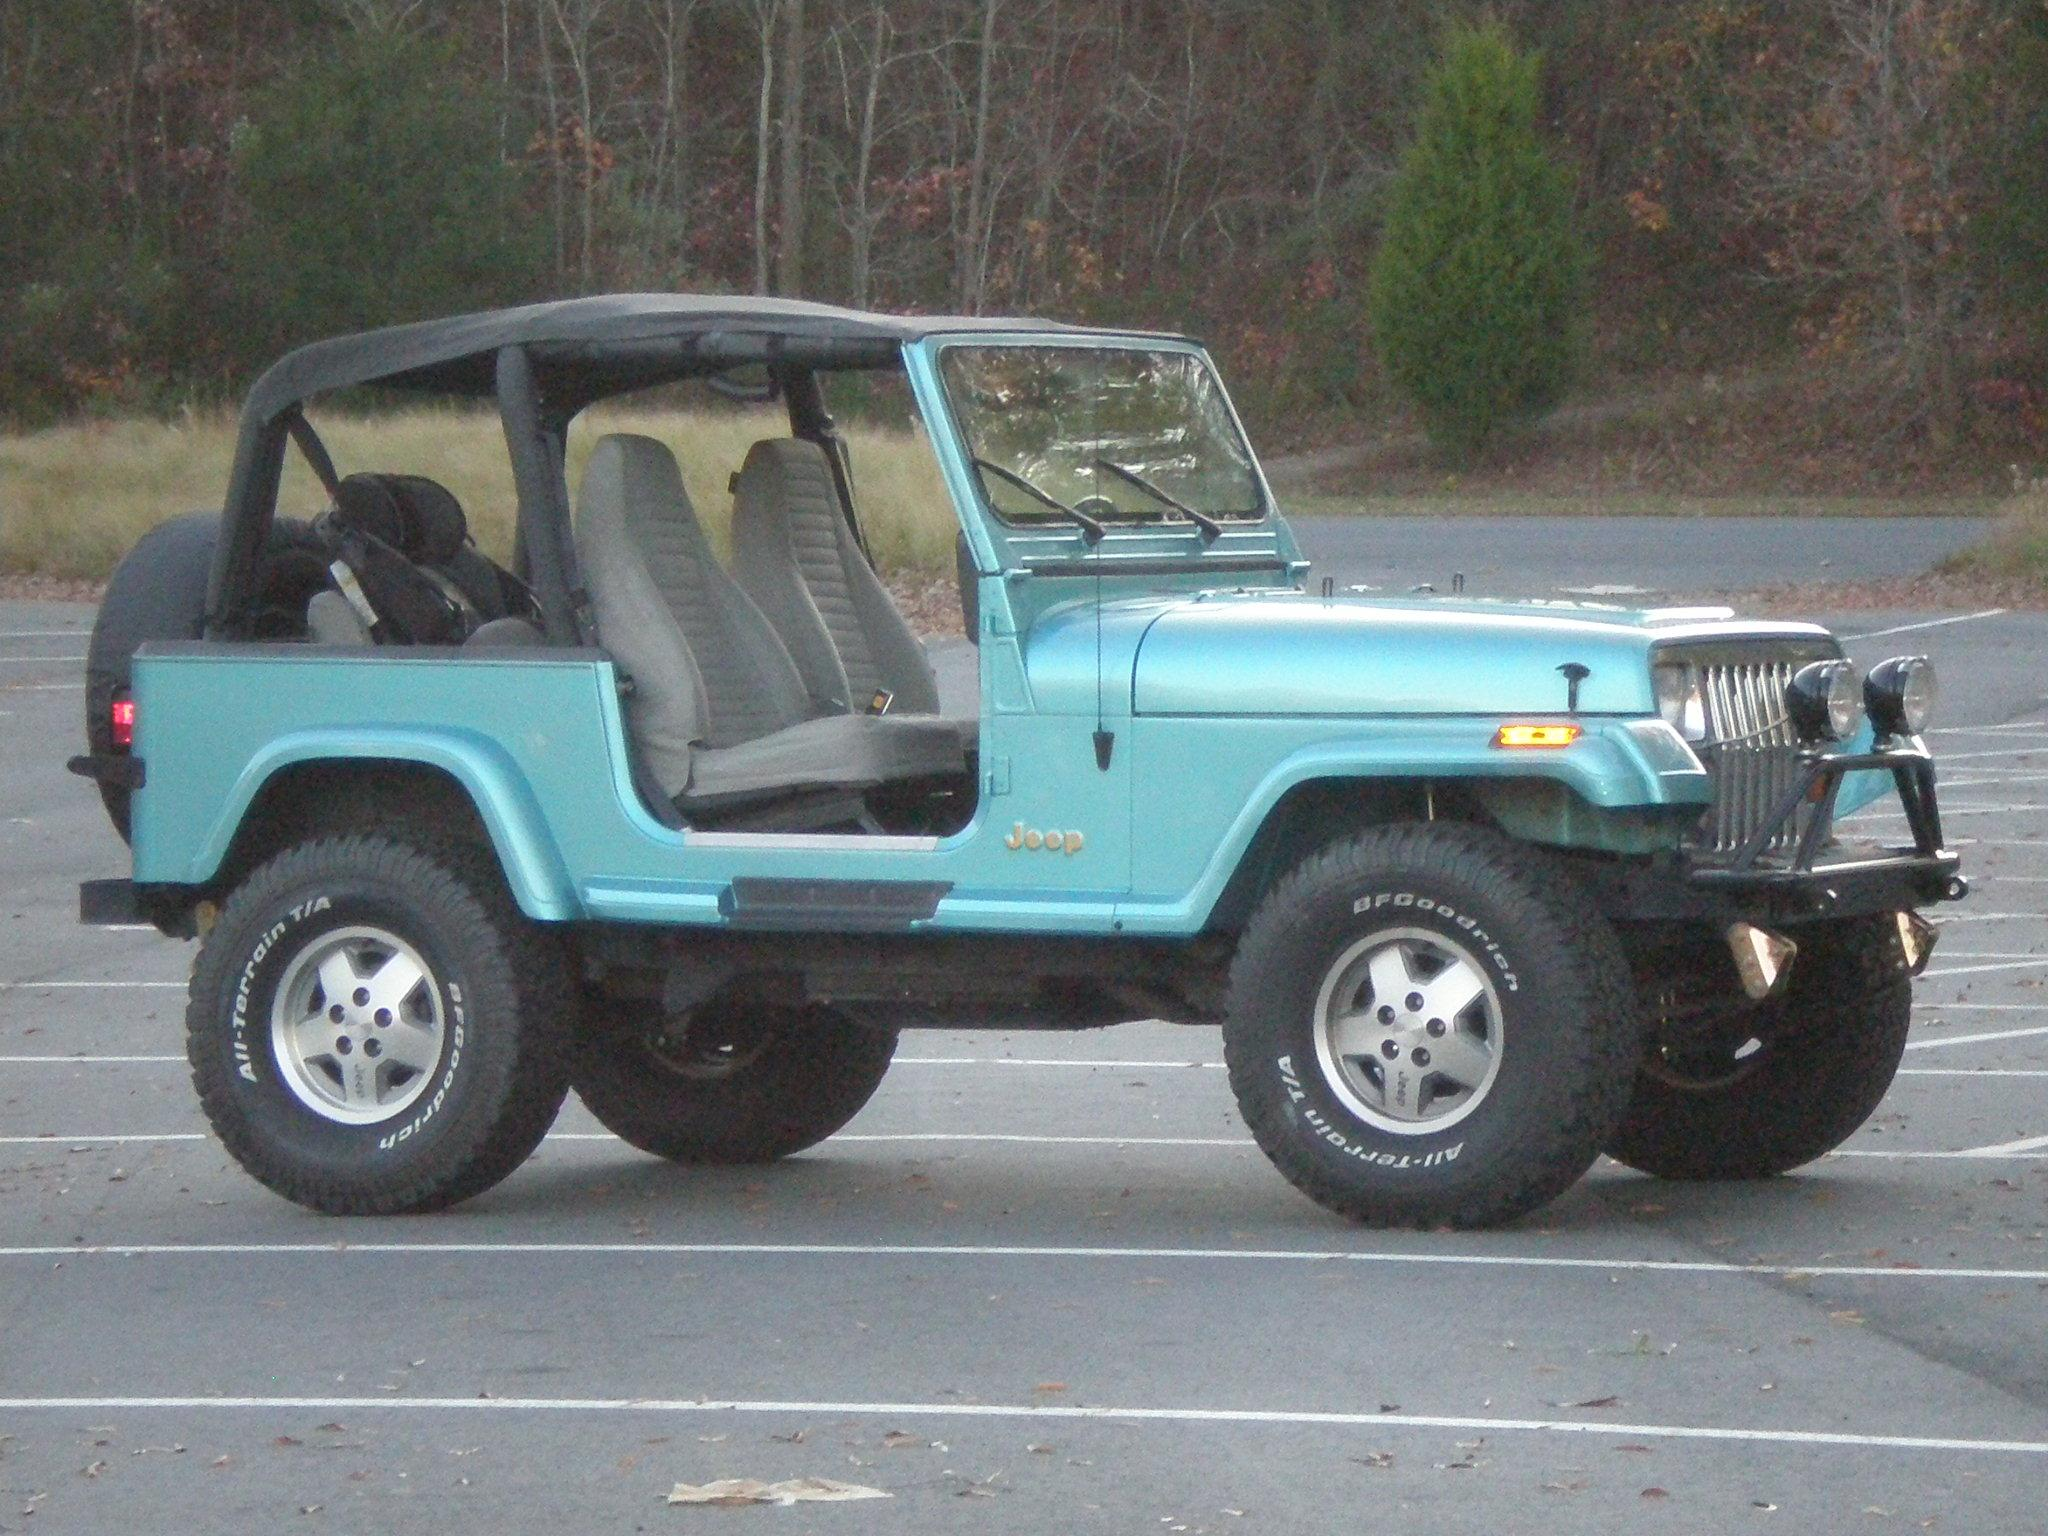 mikeyjm1 1995 jeep yj specs, photos, modification info at cardomain